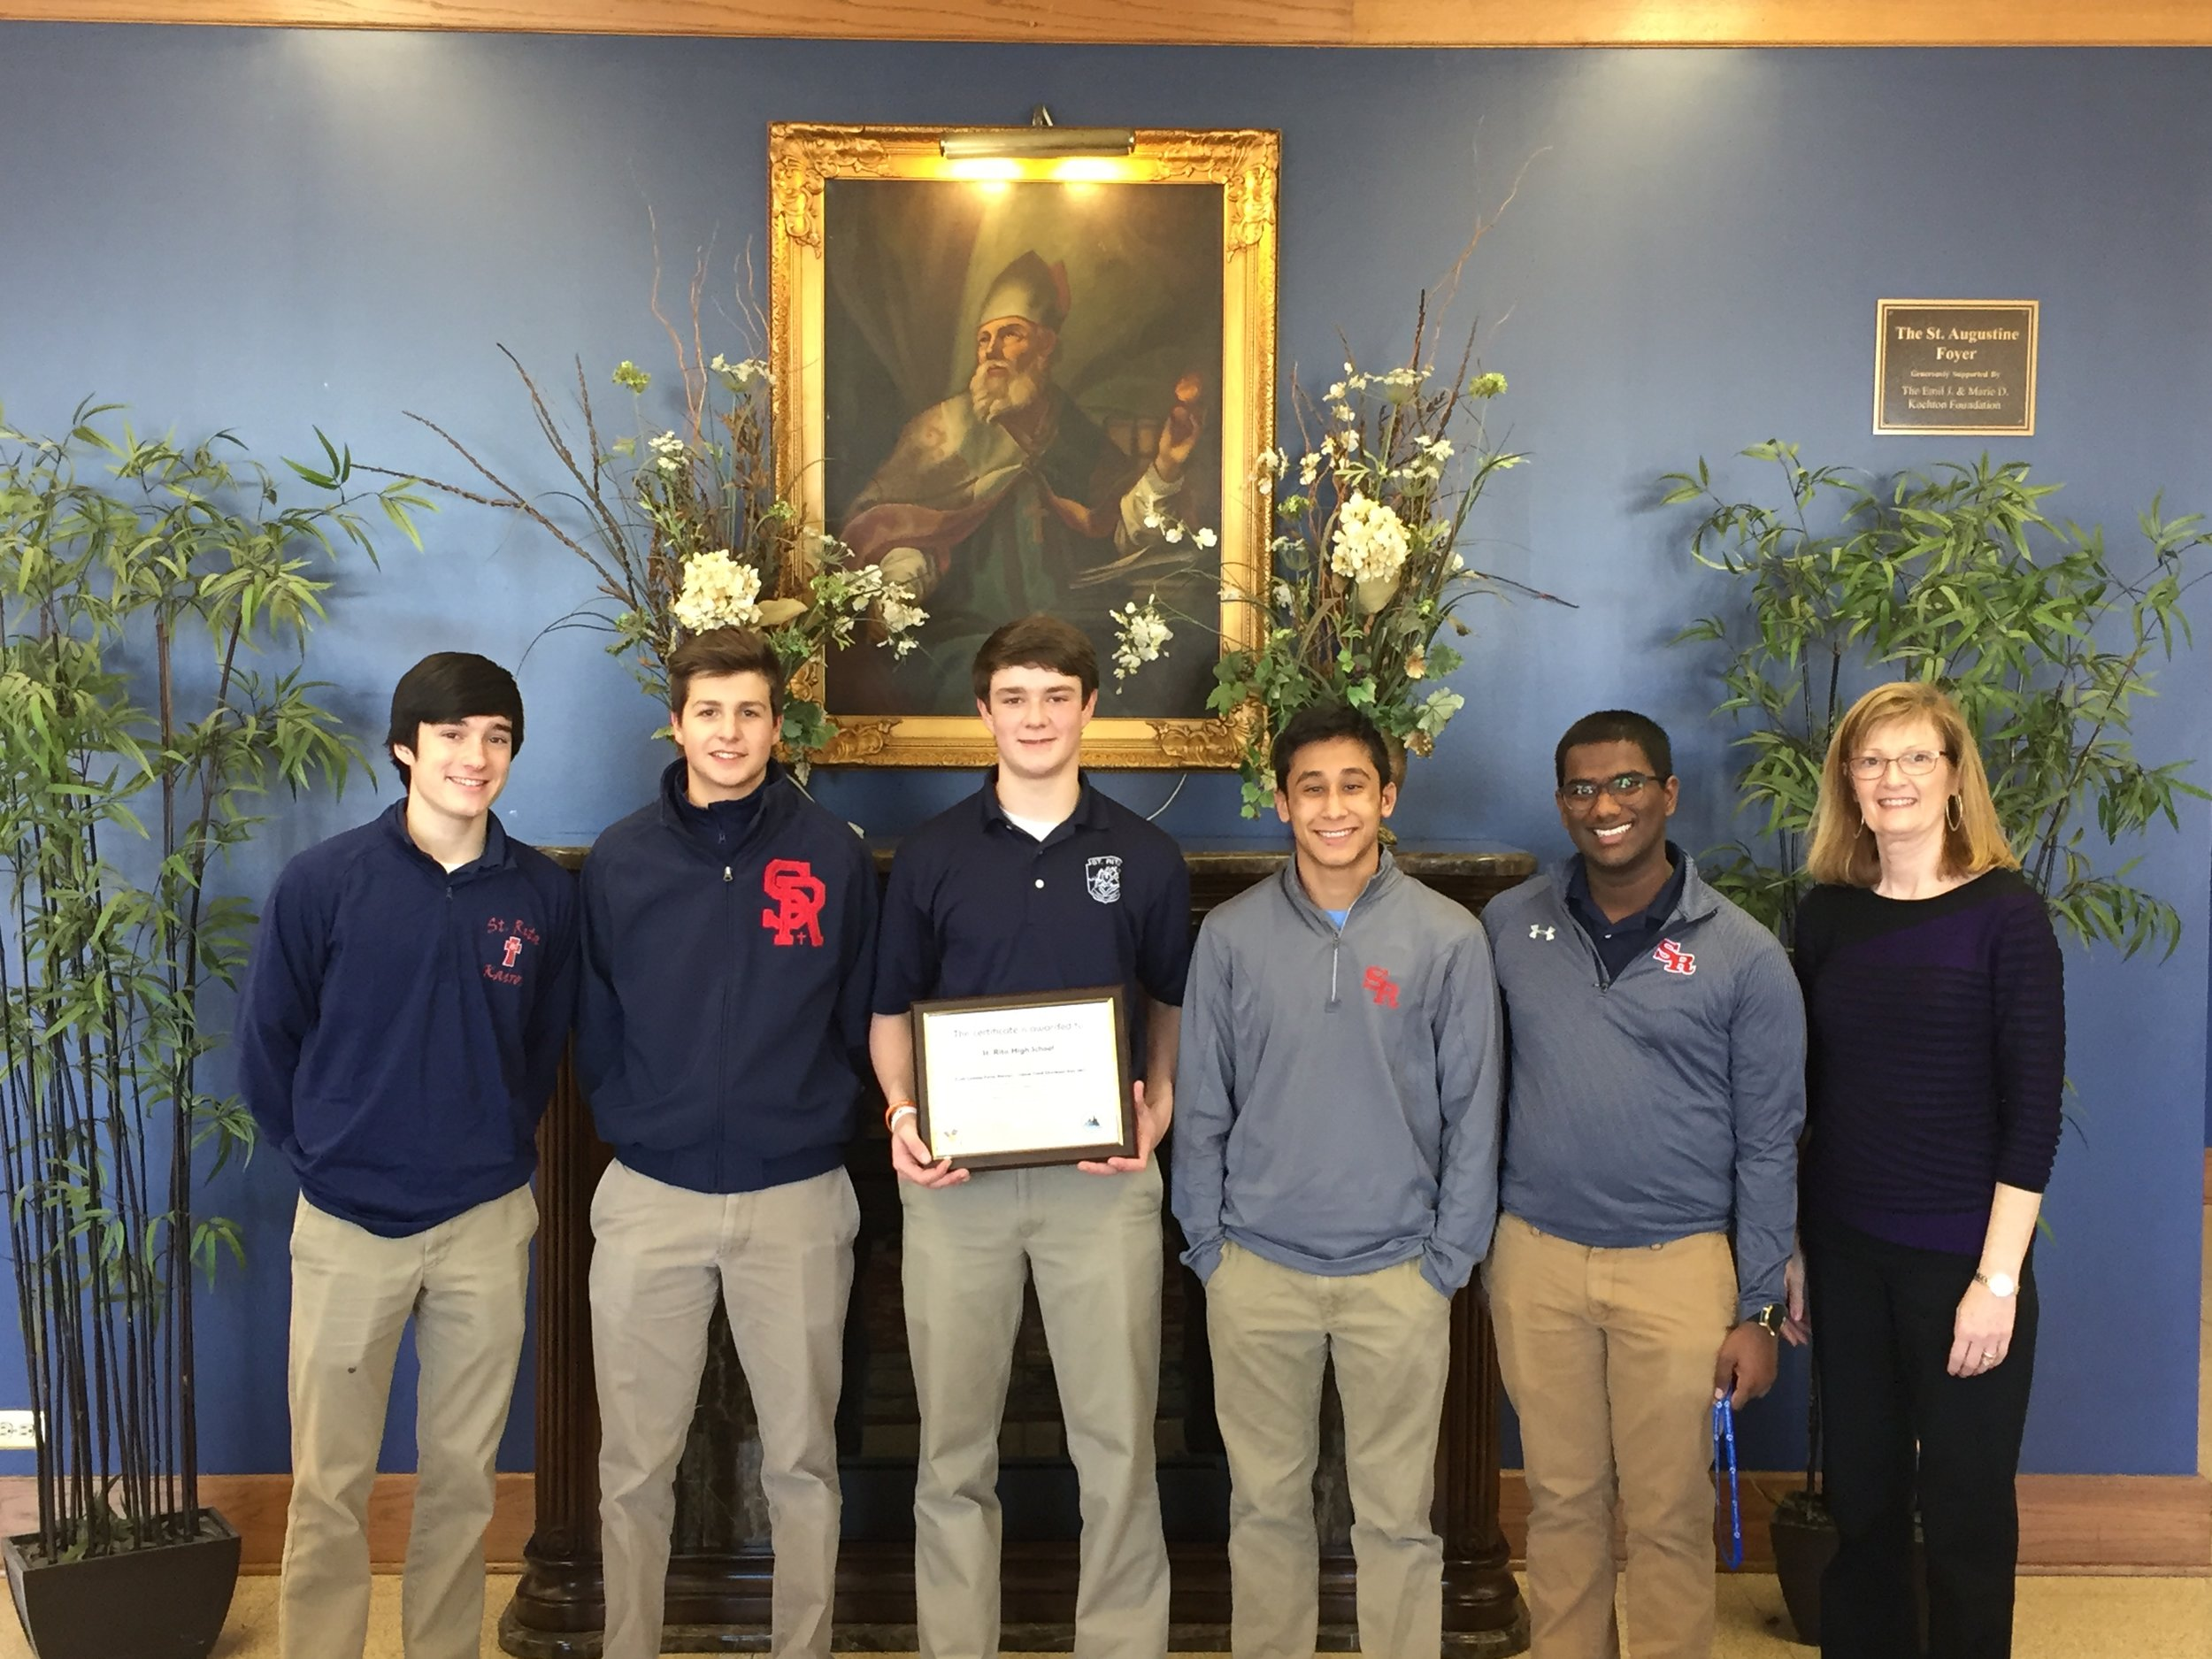 Pictured: L to R: Brian Murphy '17 (St. John Fisher),  Nino Rizzi '17 (Infant Jesus of Prague), Charlie Coughlin '18 (Christ the King), Orlando Rojas '17 (St. Benedict), Victor Martinez '18 (St. Barnabas), Diane Merrion. Not Pictured: Nick Durham '17 (Central Jr. High)